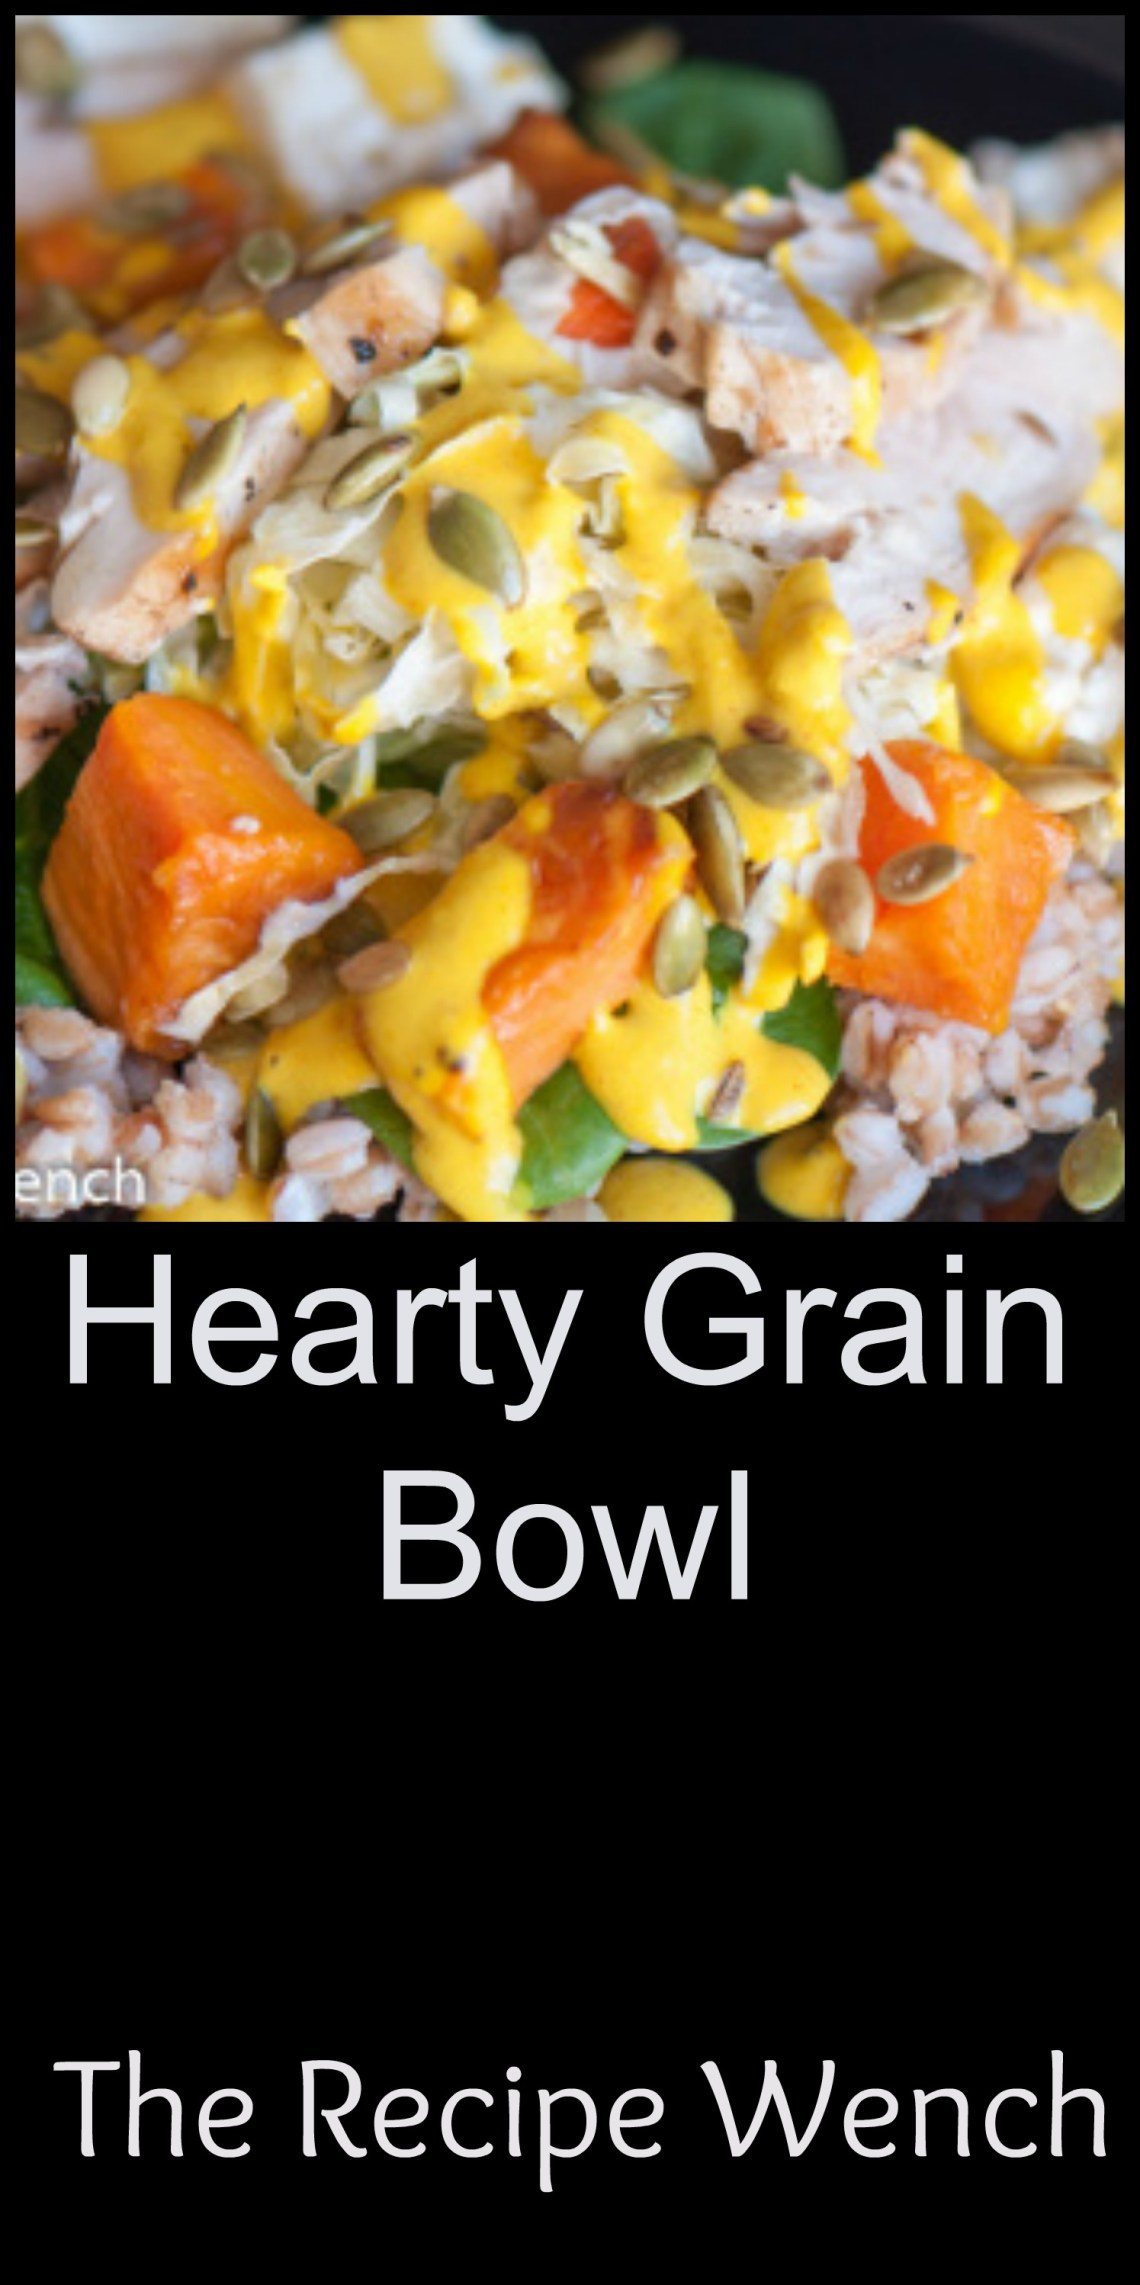 Delicious hearty grain bowl with in-season roasted vegetables like carrots and sweet potatoes. Creamy feta cheese and a vibrant tahini dressing top it off! | The Recipe Wench